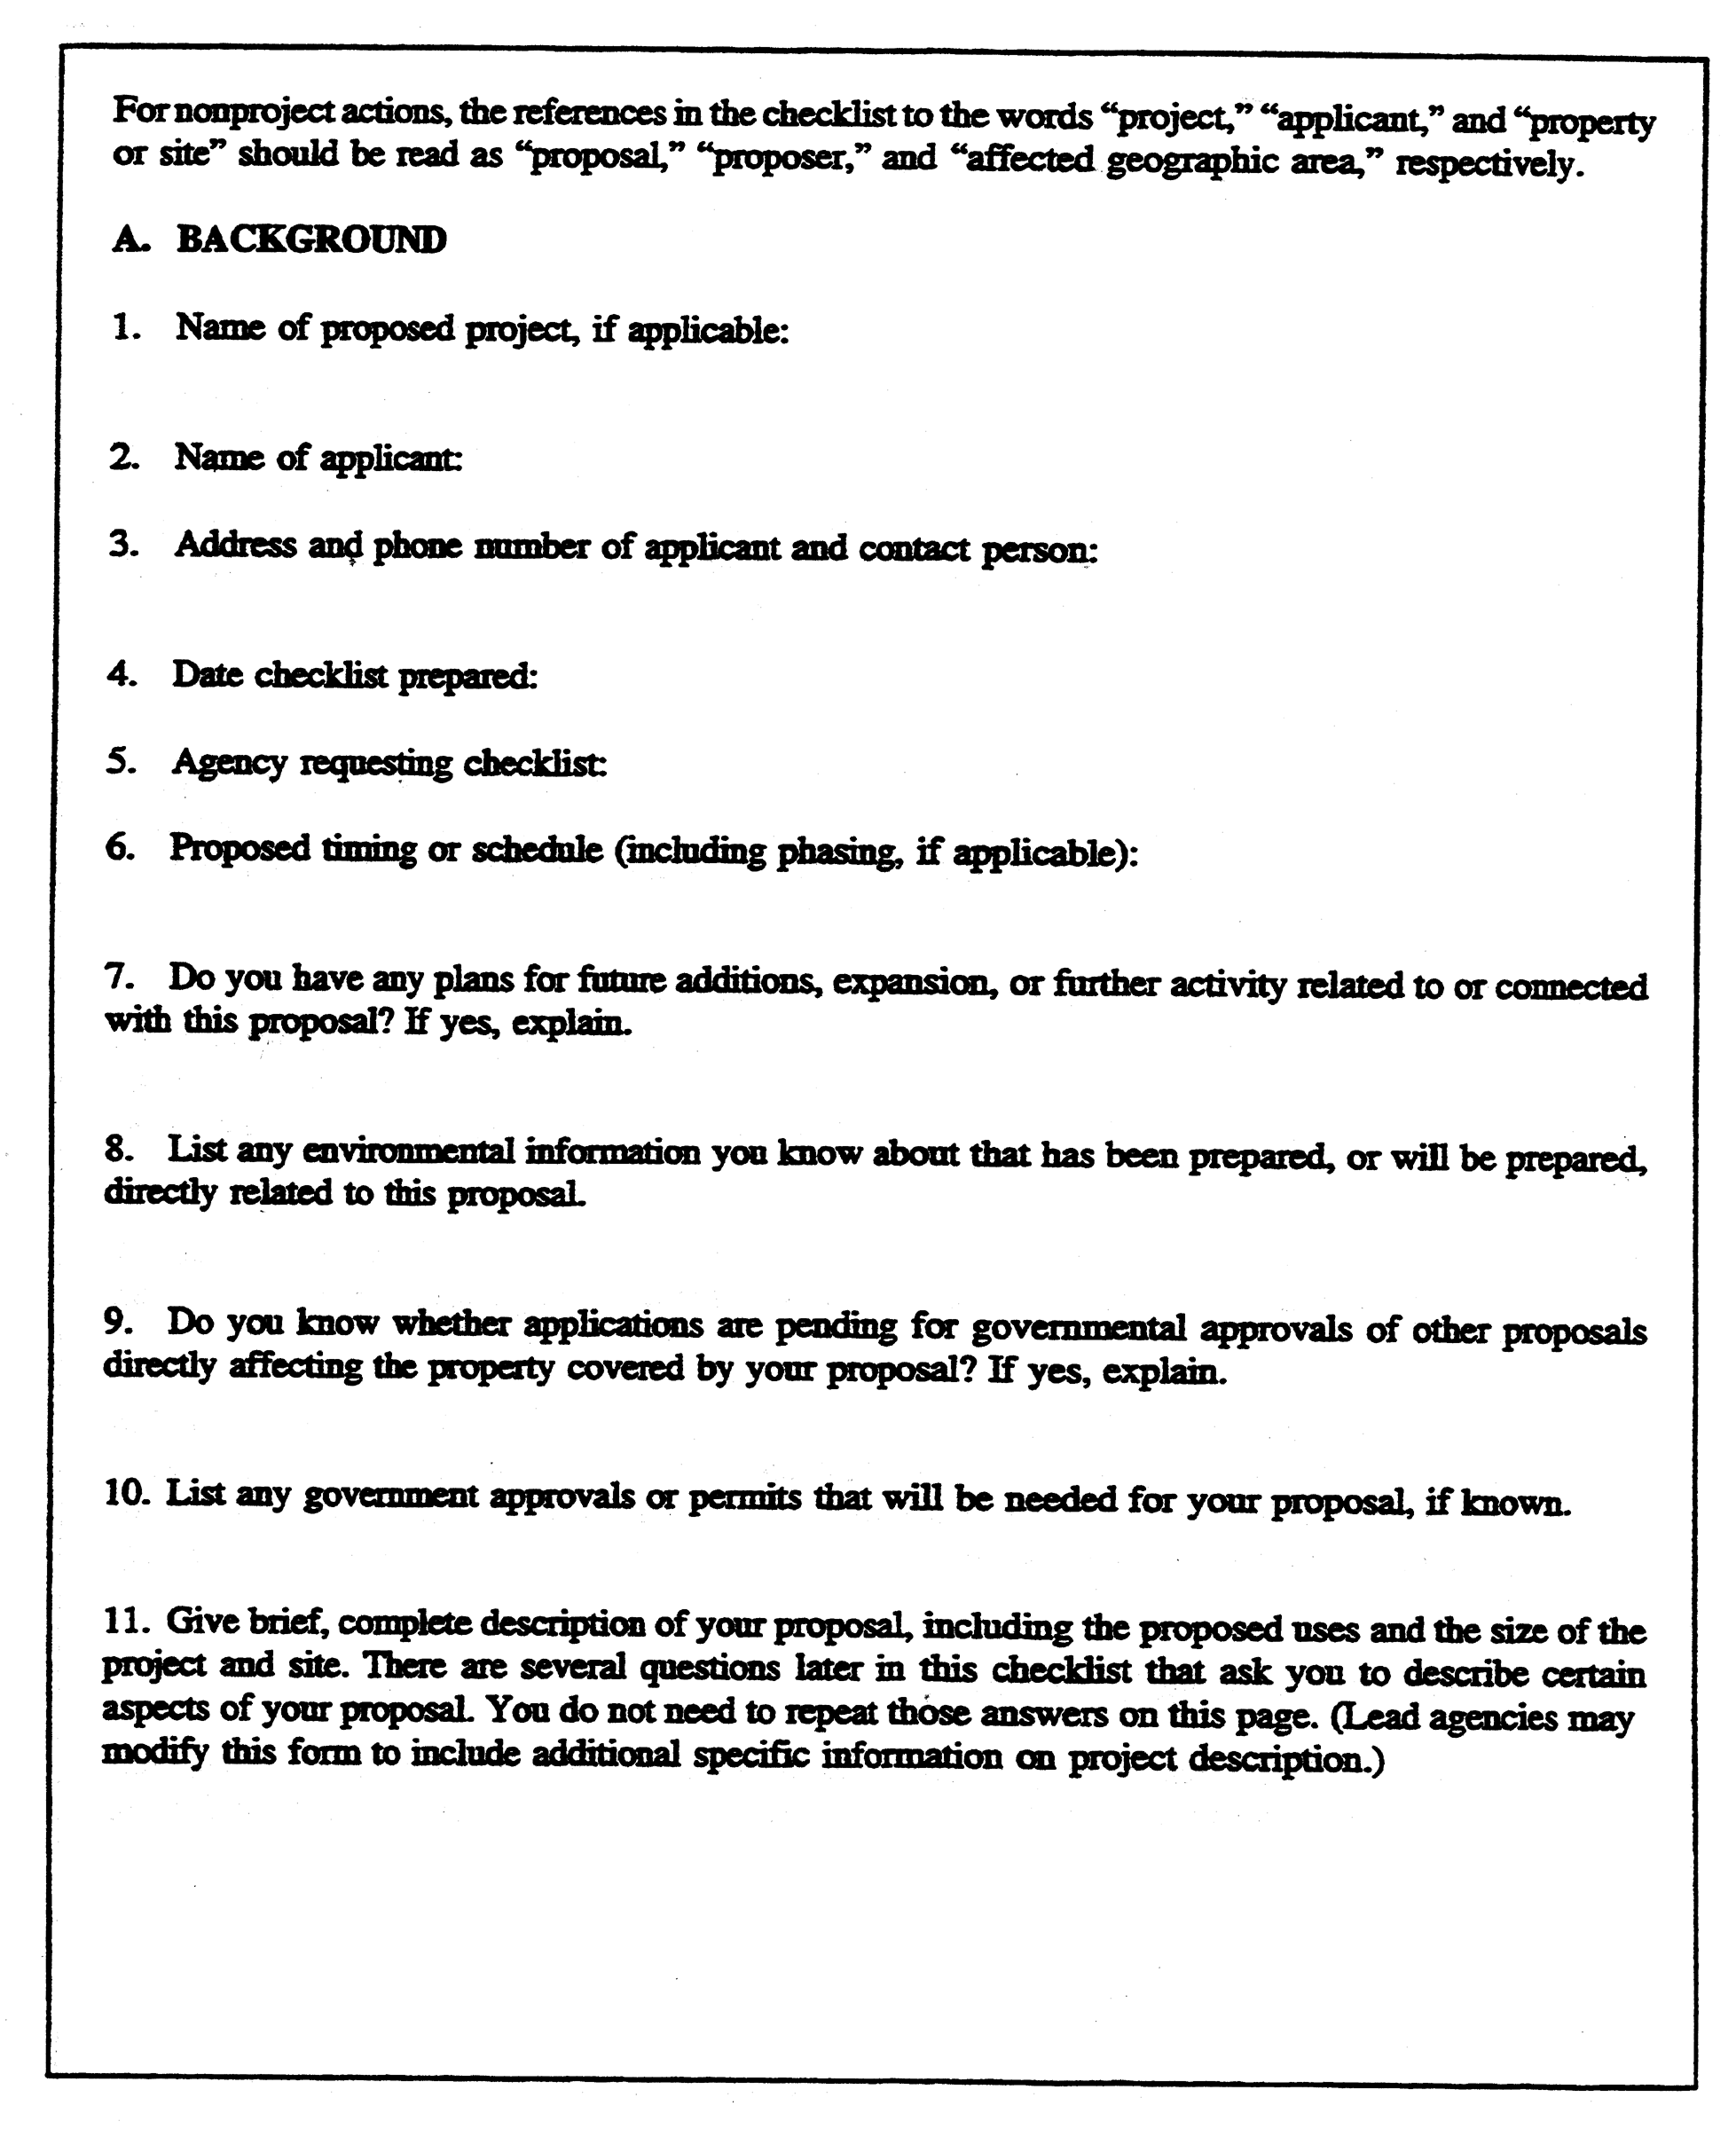 Chapter 25 05 - ENVIRONMENTAL POLICIES AND PROCEDURES